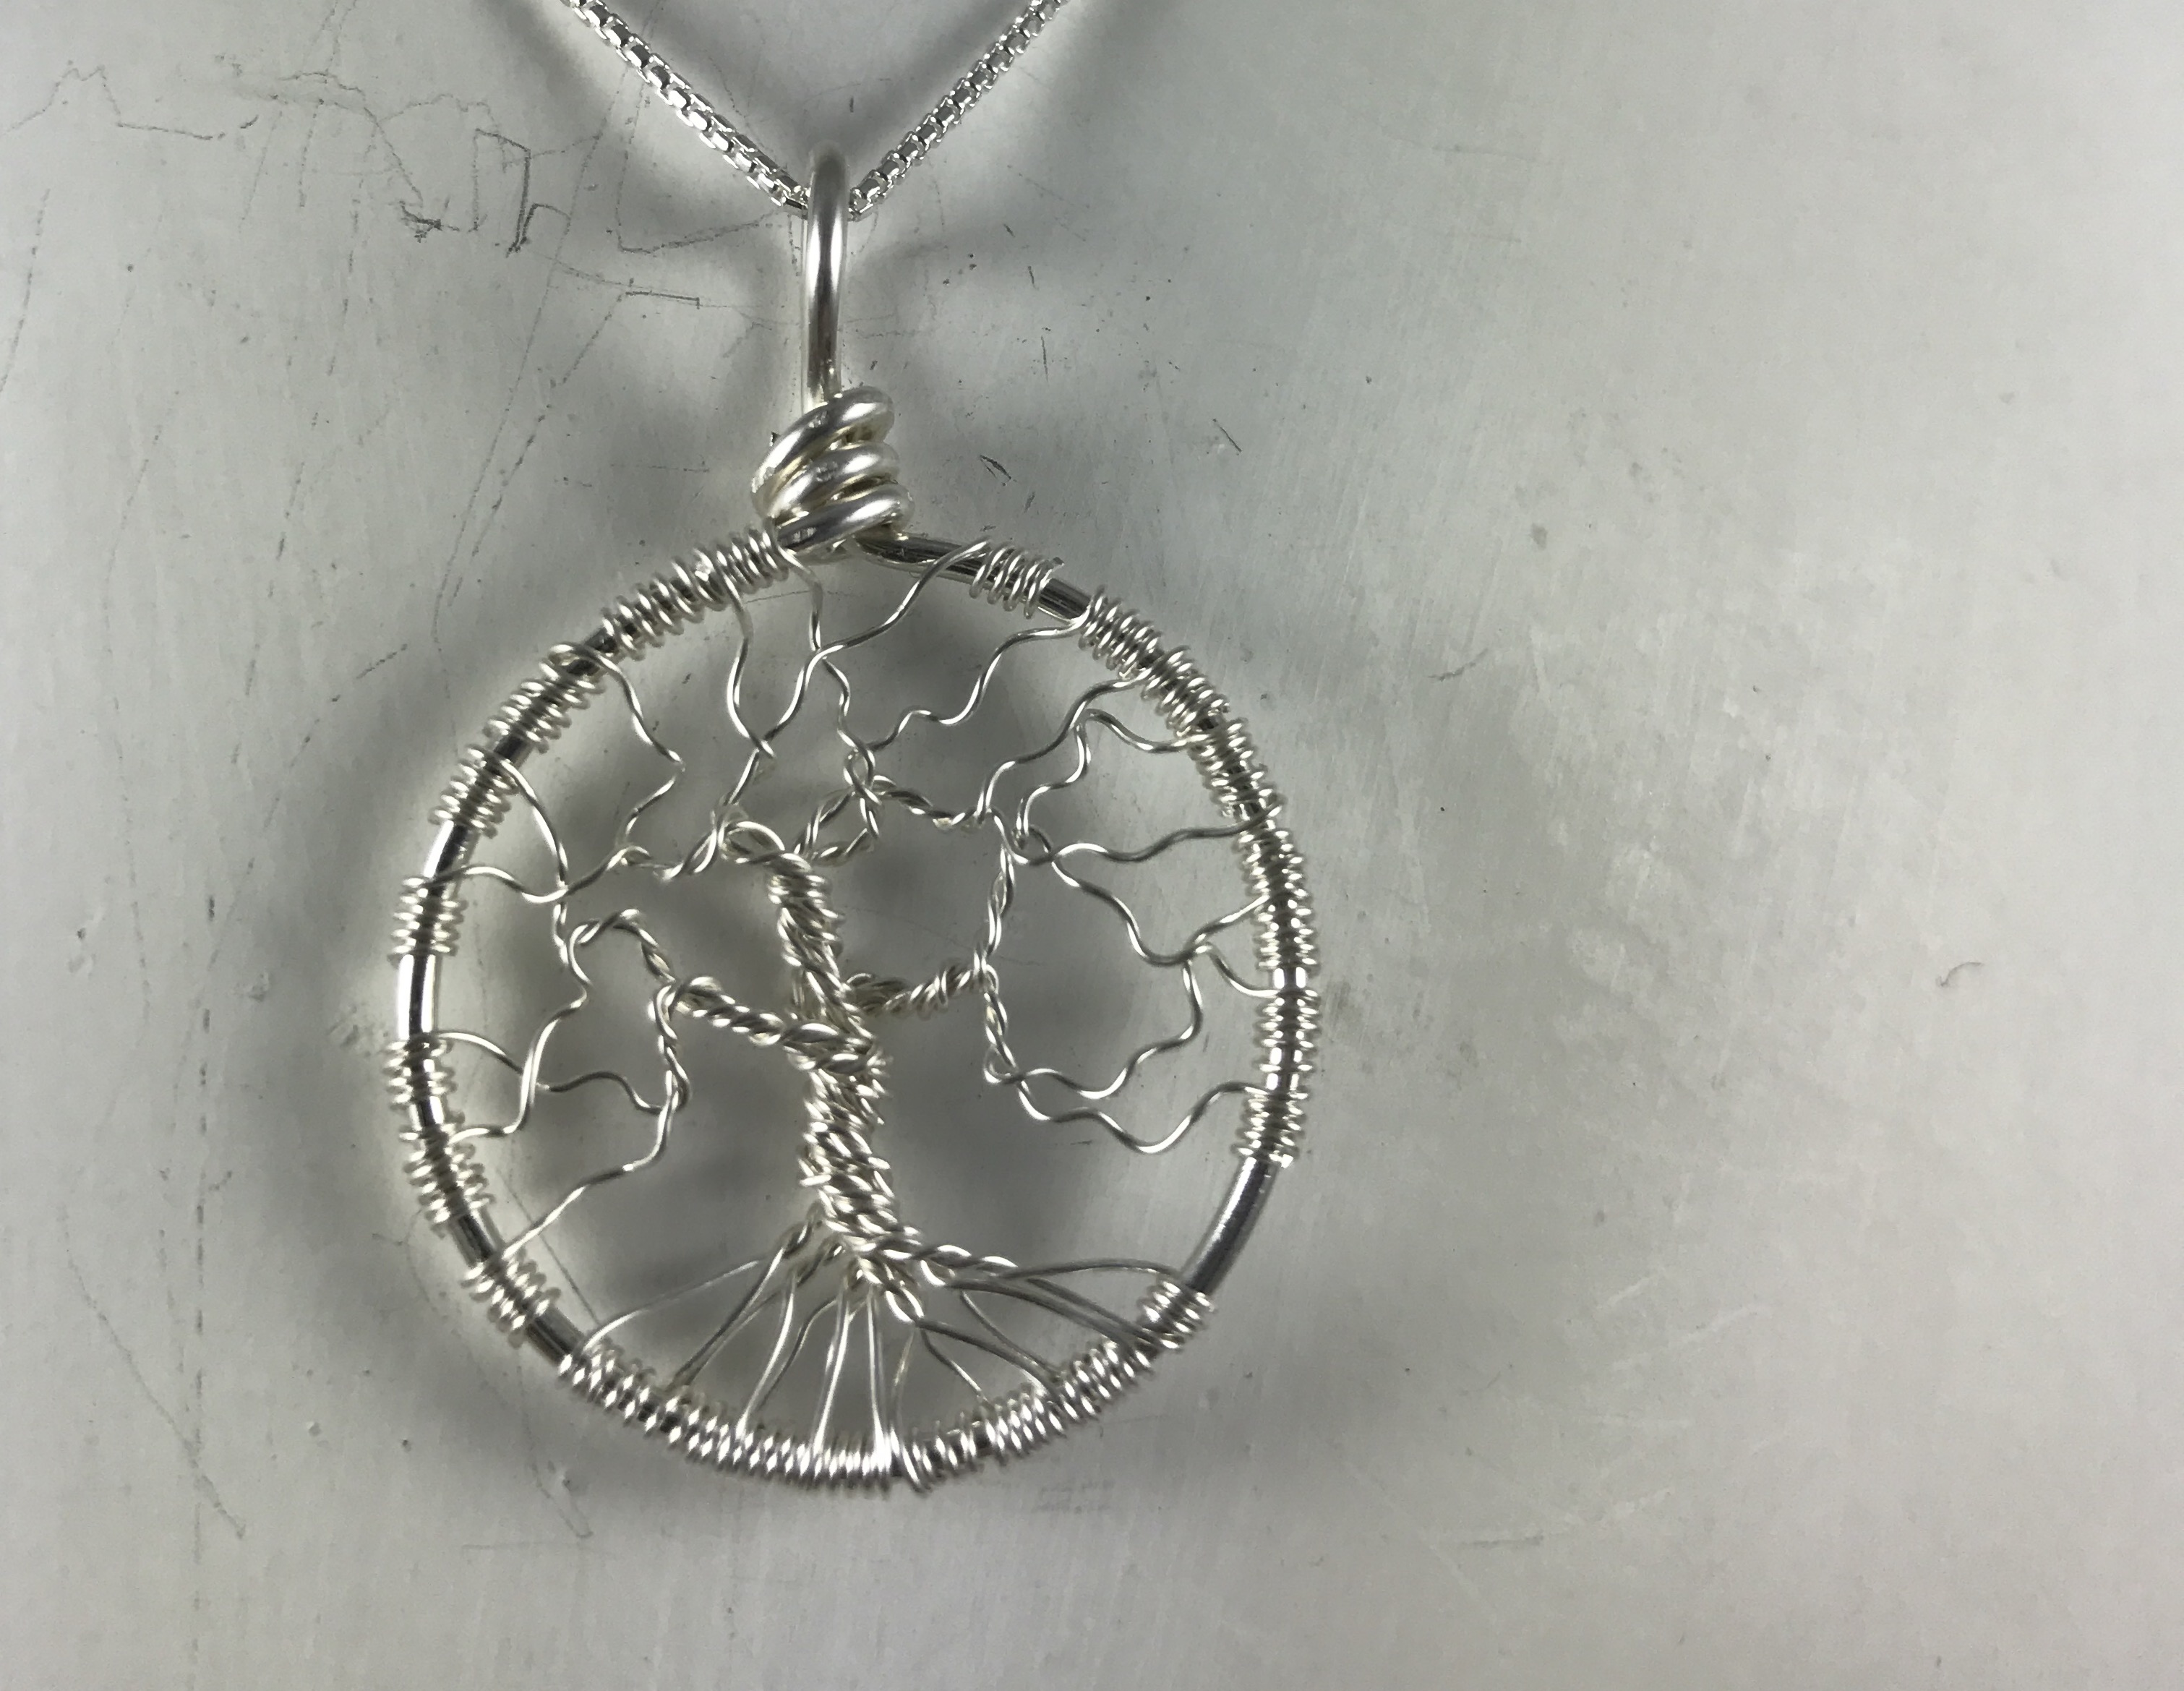 Creative Expressions - Tree of Life Pendant - Silver Wire